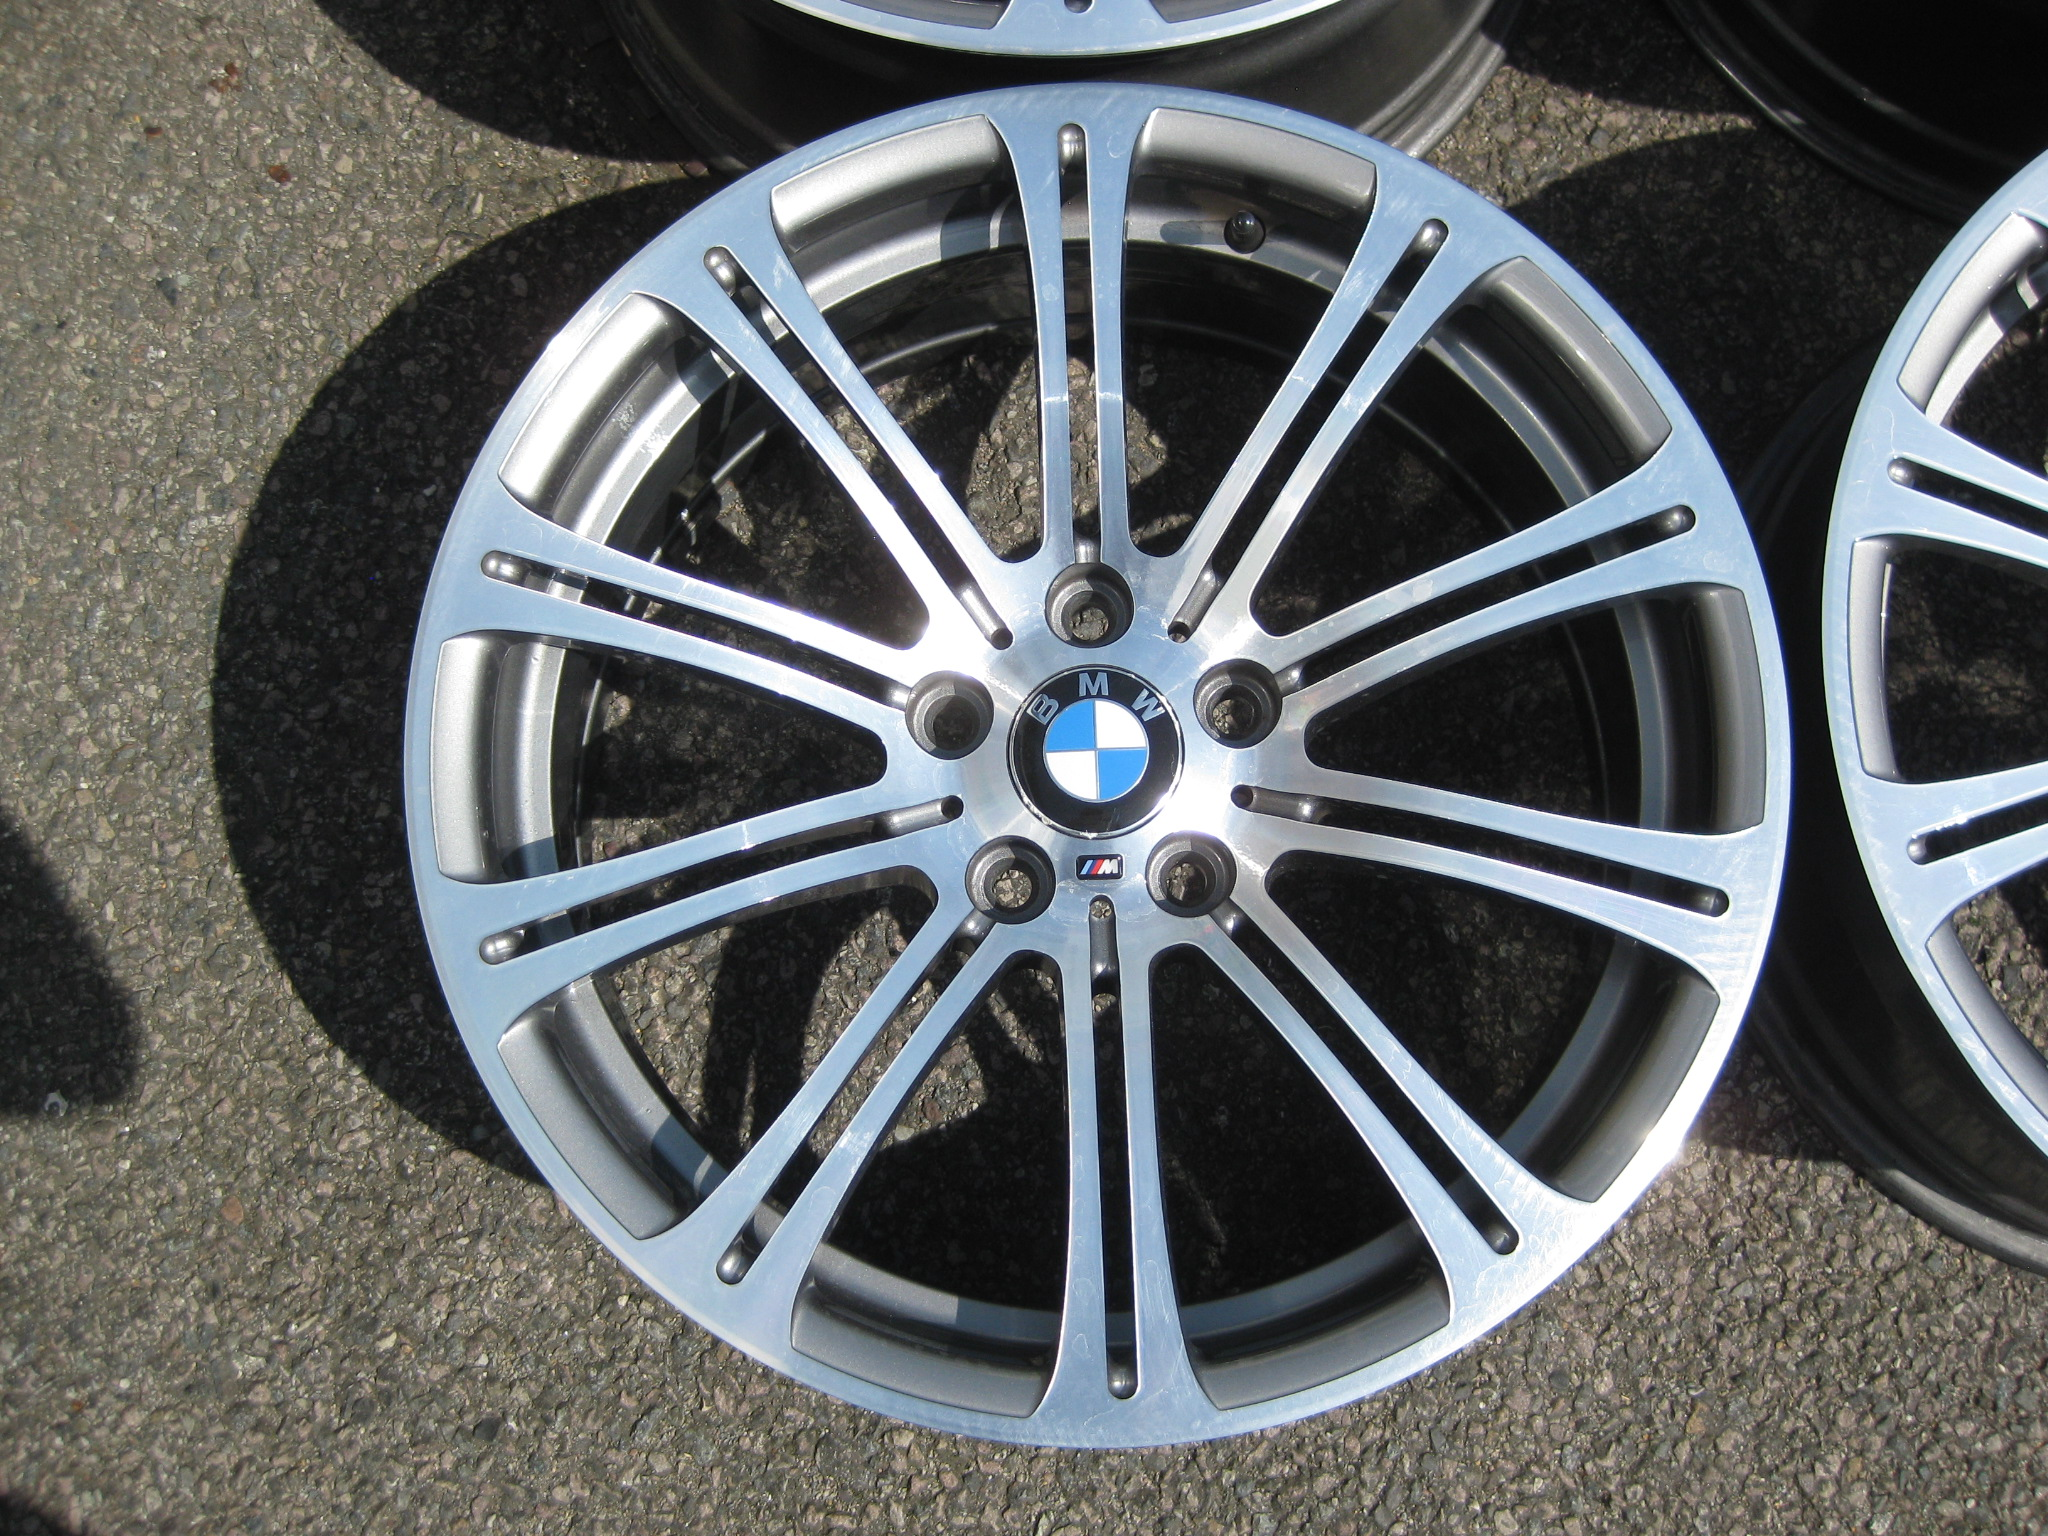 "USED 19"" GENUINE STYLE 220 E92 M3 POLISHED ALLOY WHEELS, WIDE REAR, RECENTLY FULLY REFURBISHED"